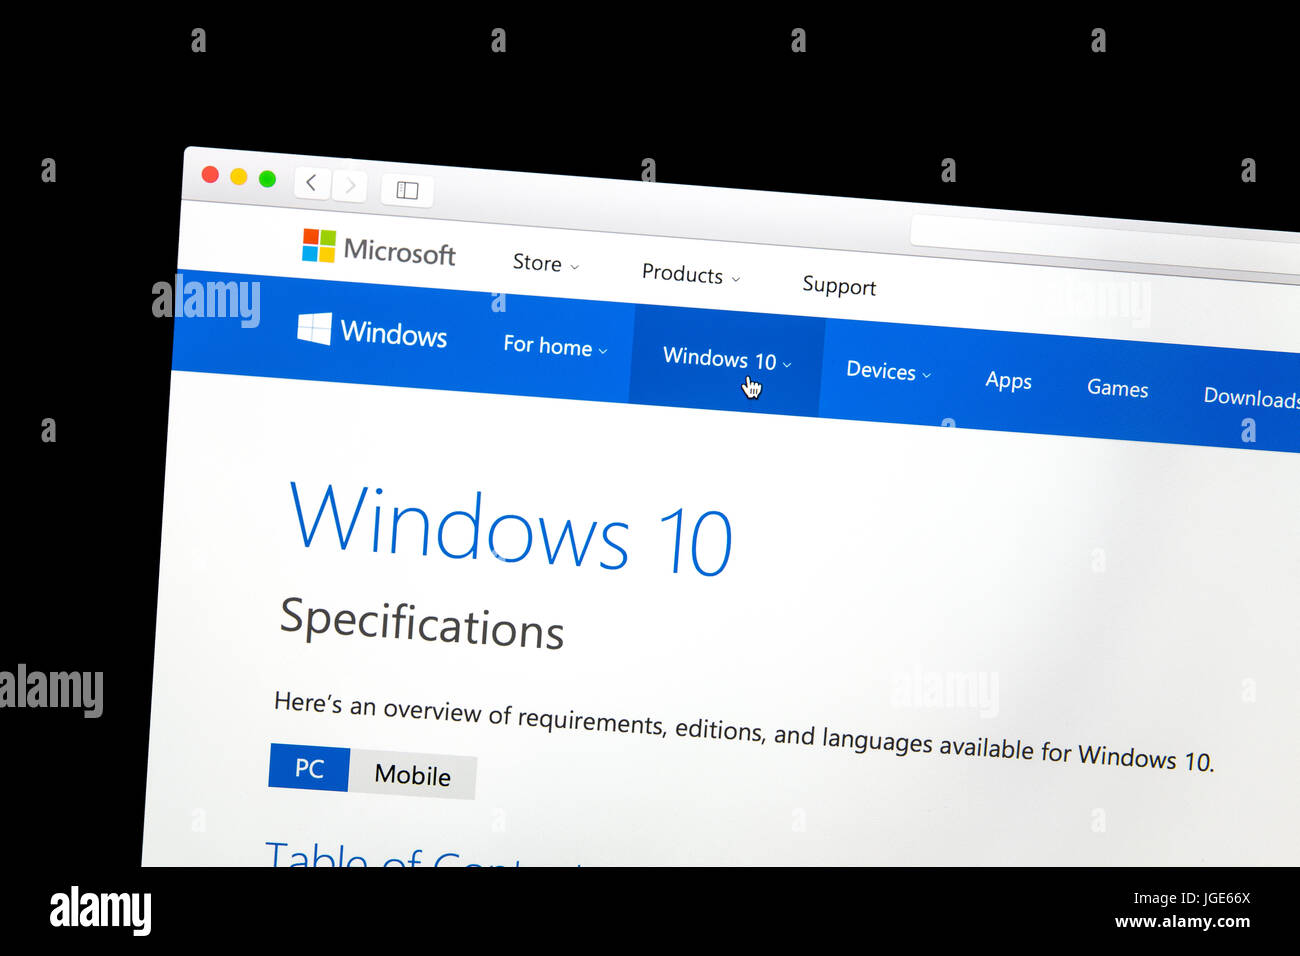 Windows 10 website on a computer screen. Windows 10 is a personal computer operating system developed and released - Stock Image